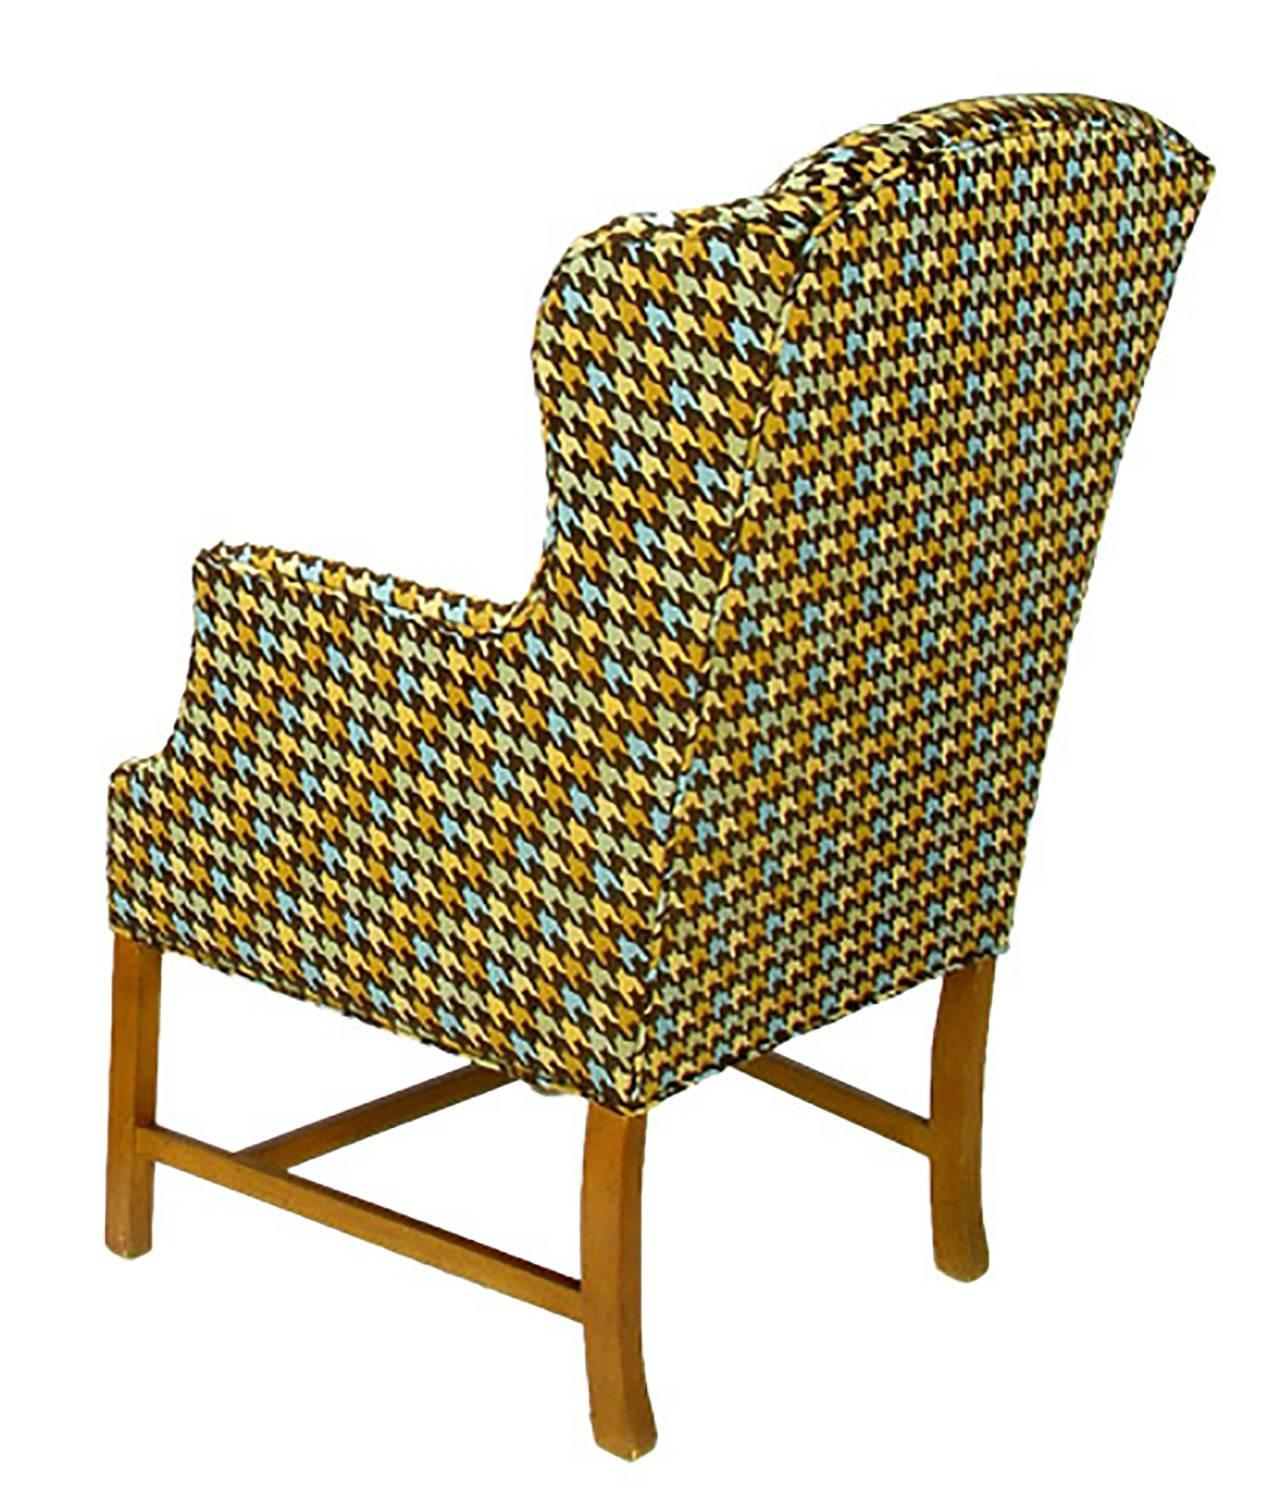 Pair of 1940s wing chairs in colorful overscaled houndstooth wool for